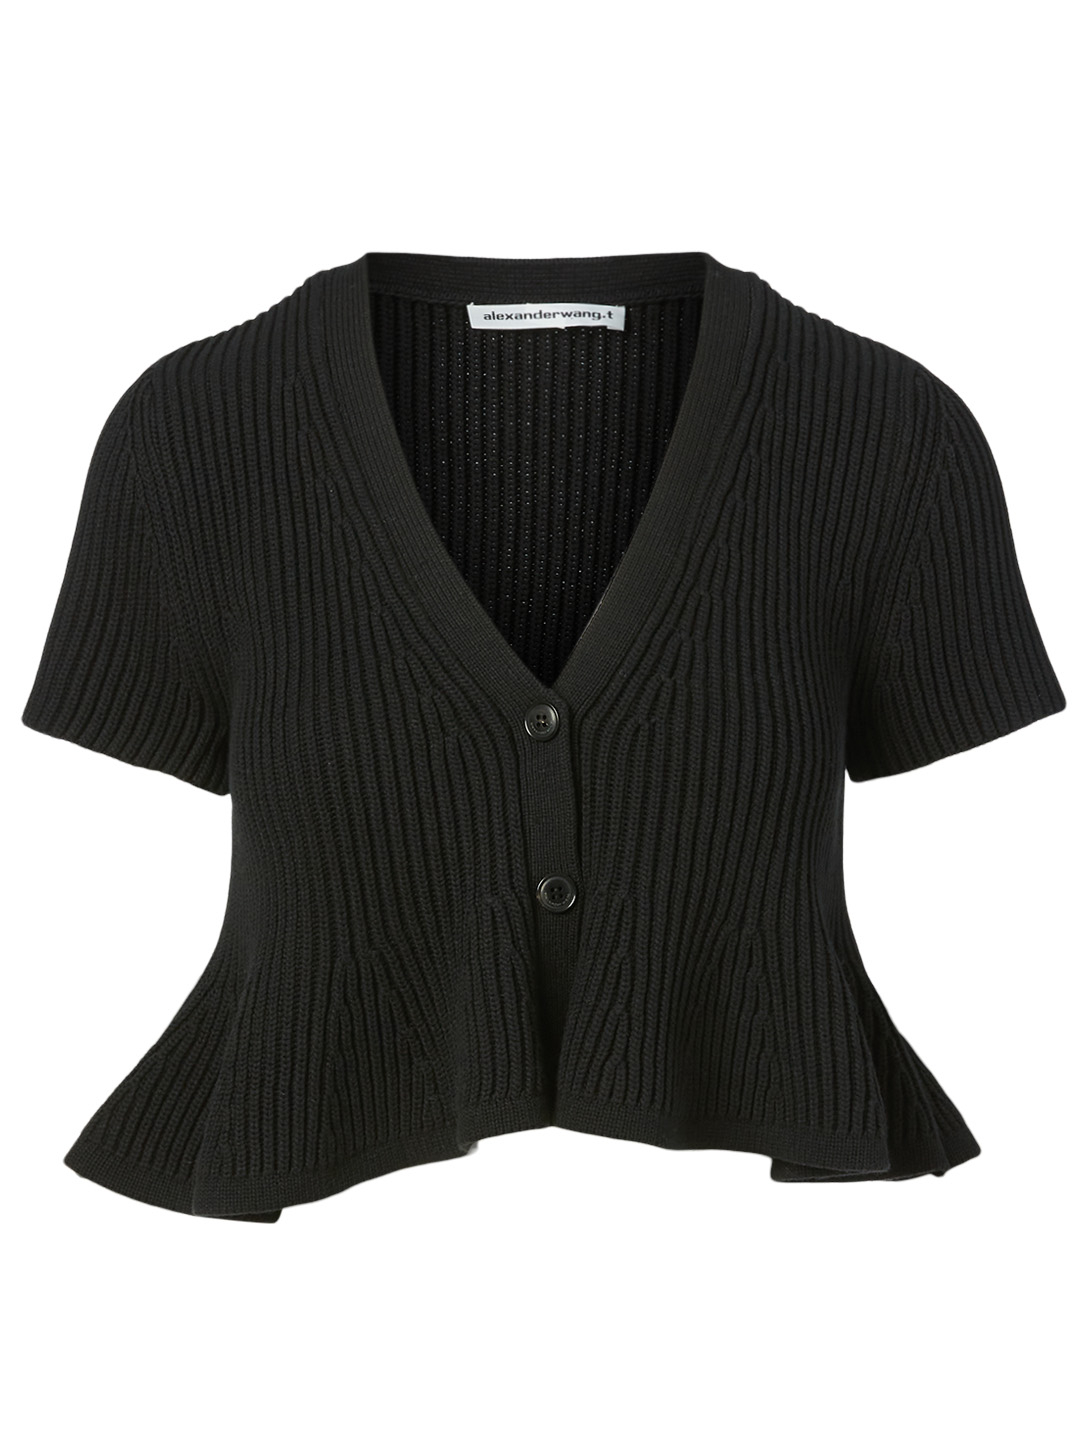 ALEXANDERWANG.T Cropped V-Neck Cardigan Women's Black